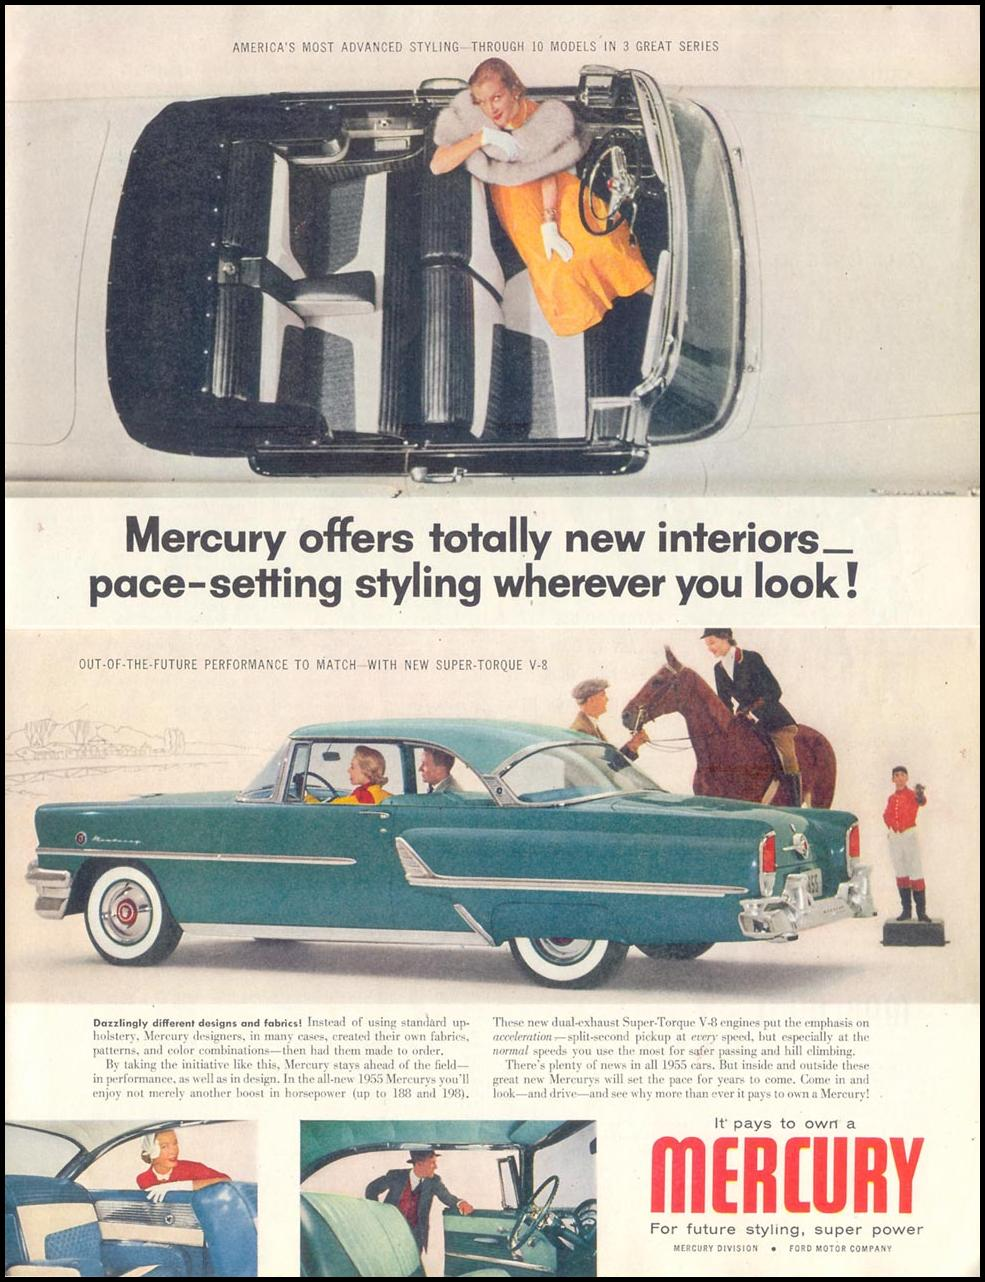 MERCURY AUTOMOBILES SATURDAY EVENING POST 02/05/1955 p. 51